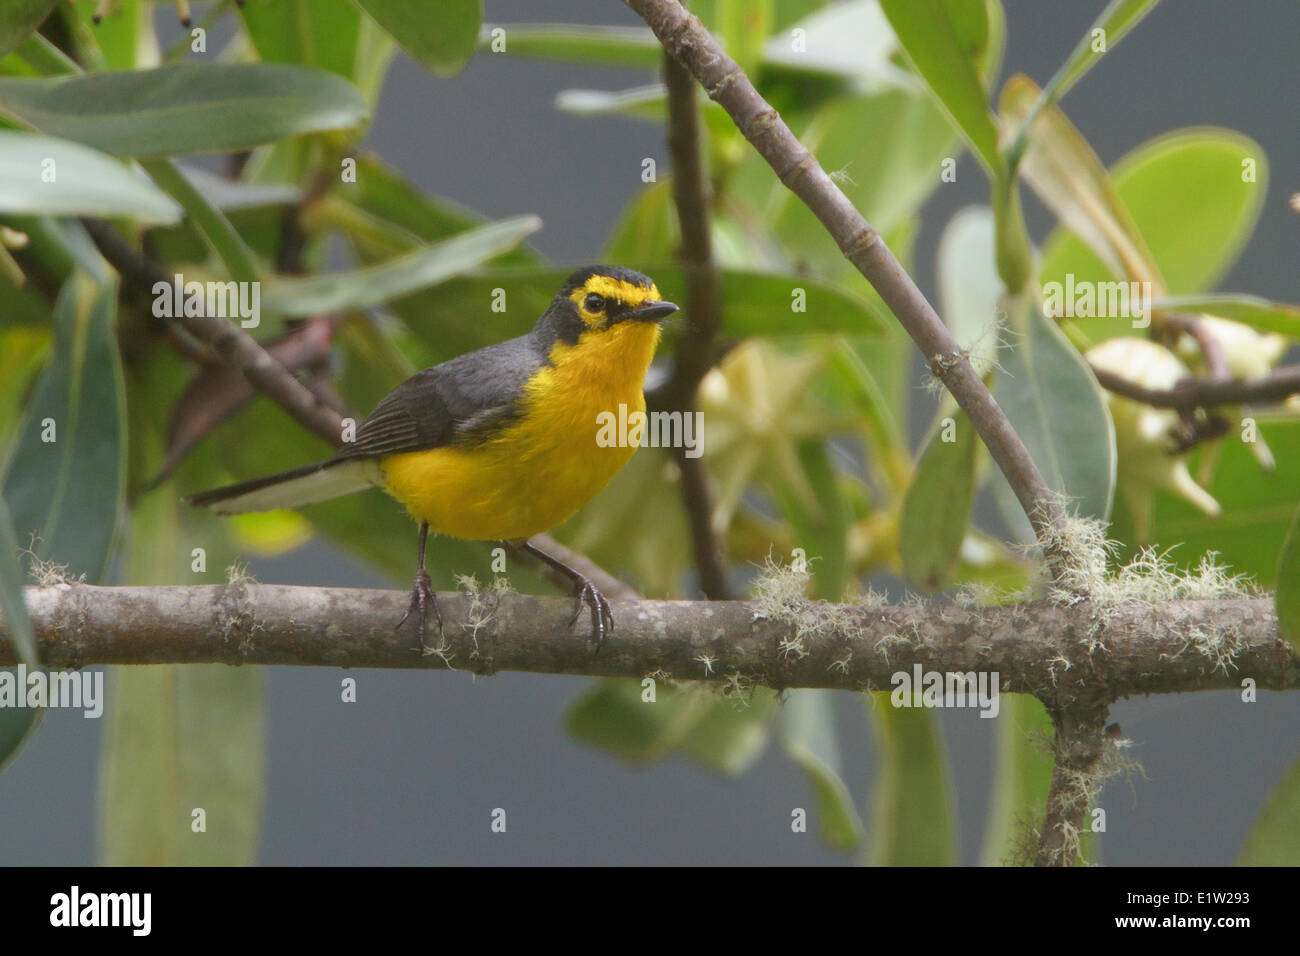 Spectacled Redstart (Myioborus melanocephalus) perched on a branch in Peru. - Stock Image